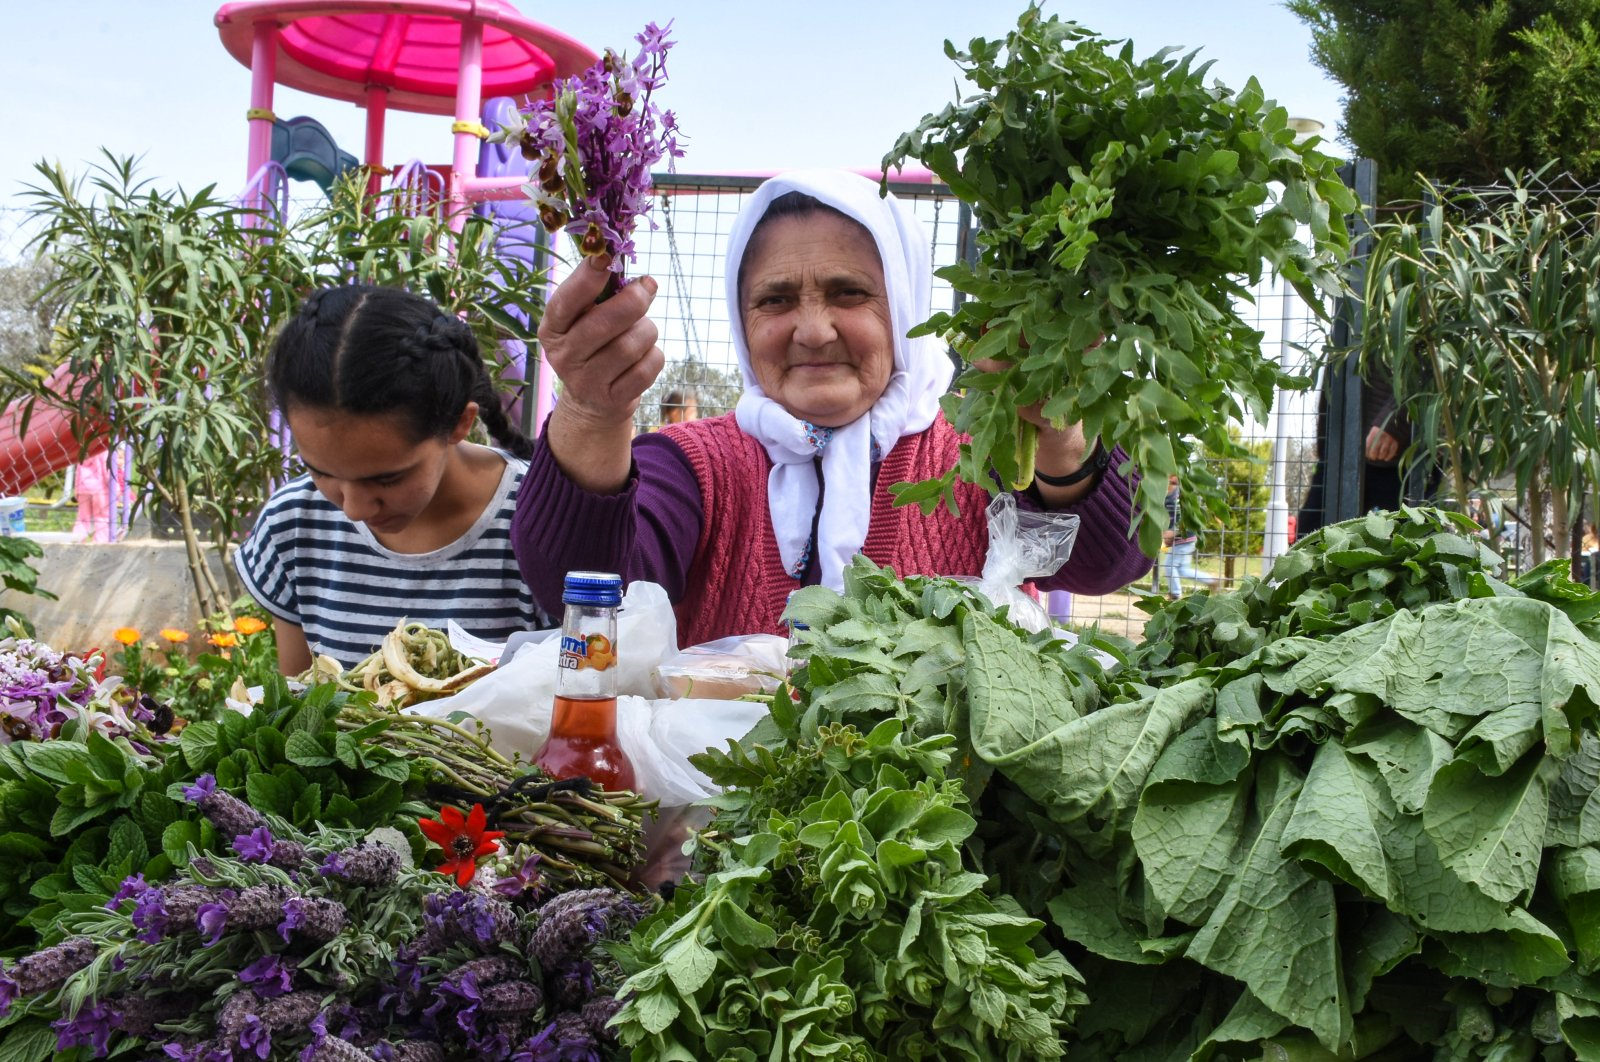 Streets in the center of the village of Ortakent in Bodrum will be lined with stands showcasing the wild greens and culinary traditions the Aegean area is famous for. (AA Photo)